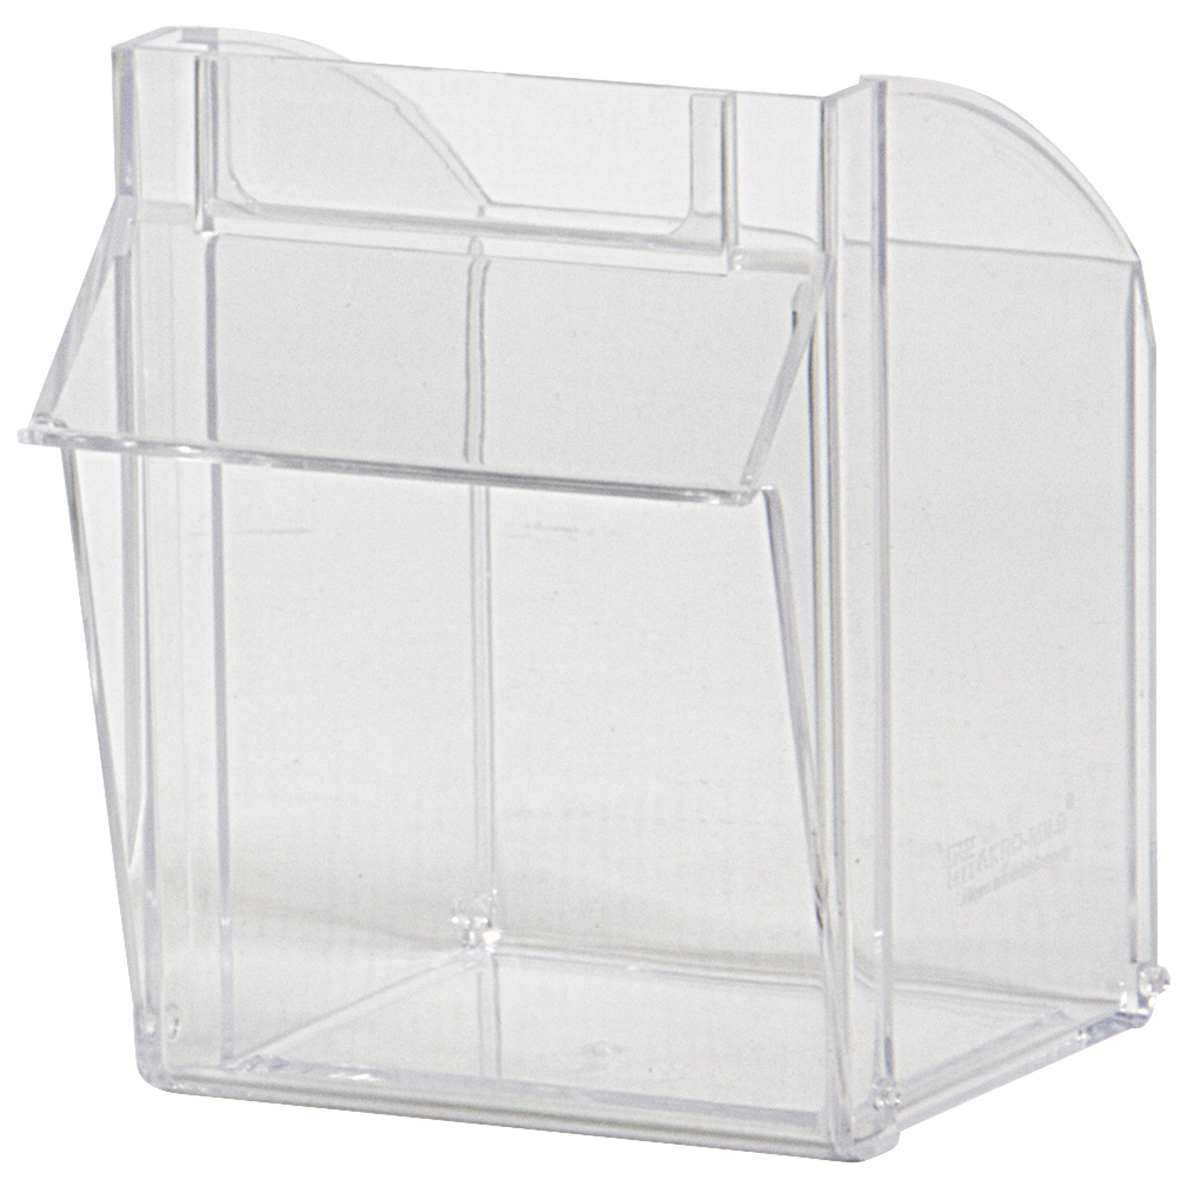 Replacement Bin for Model 06705, Clear (06705CUP).  This item sold in carton quantities of 1.